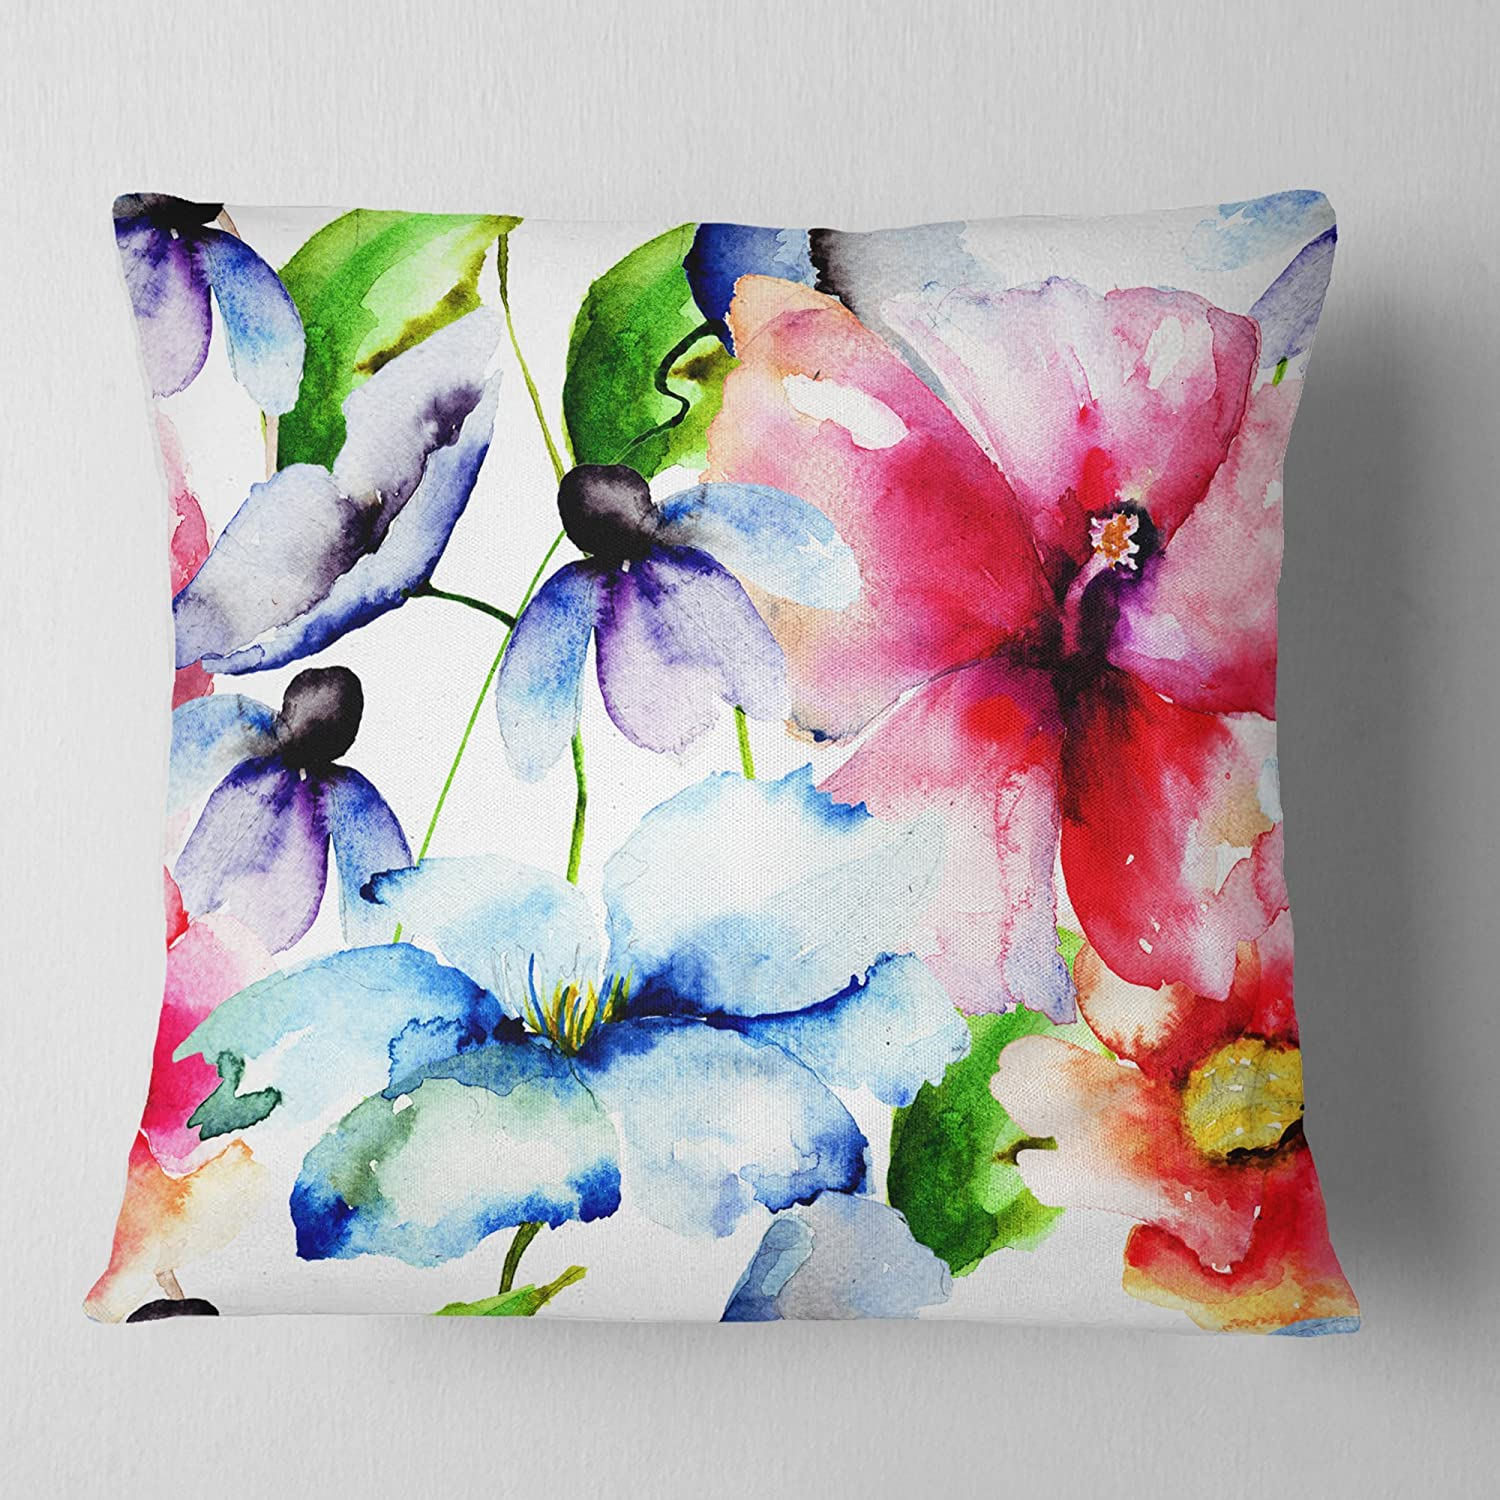 Amazon Com Designart Watercolor Flowers Everywhere Floral Pillow Insert Cushion Cover Printed On Both Side 12 In X 20 In Arts Crafts Sewing